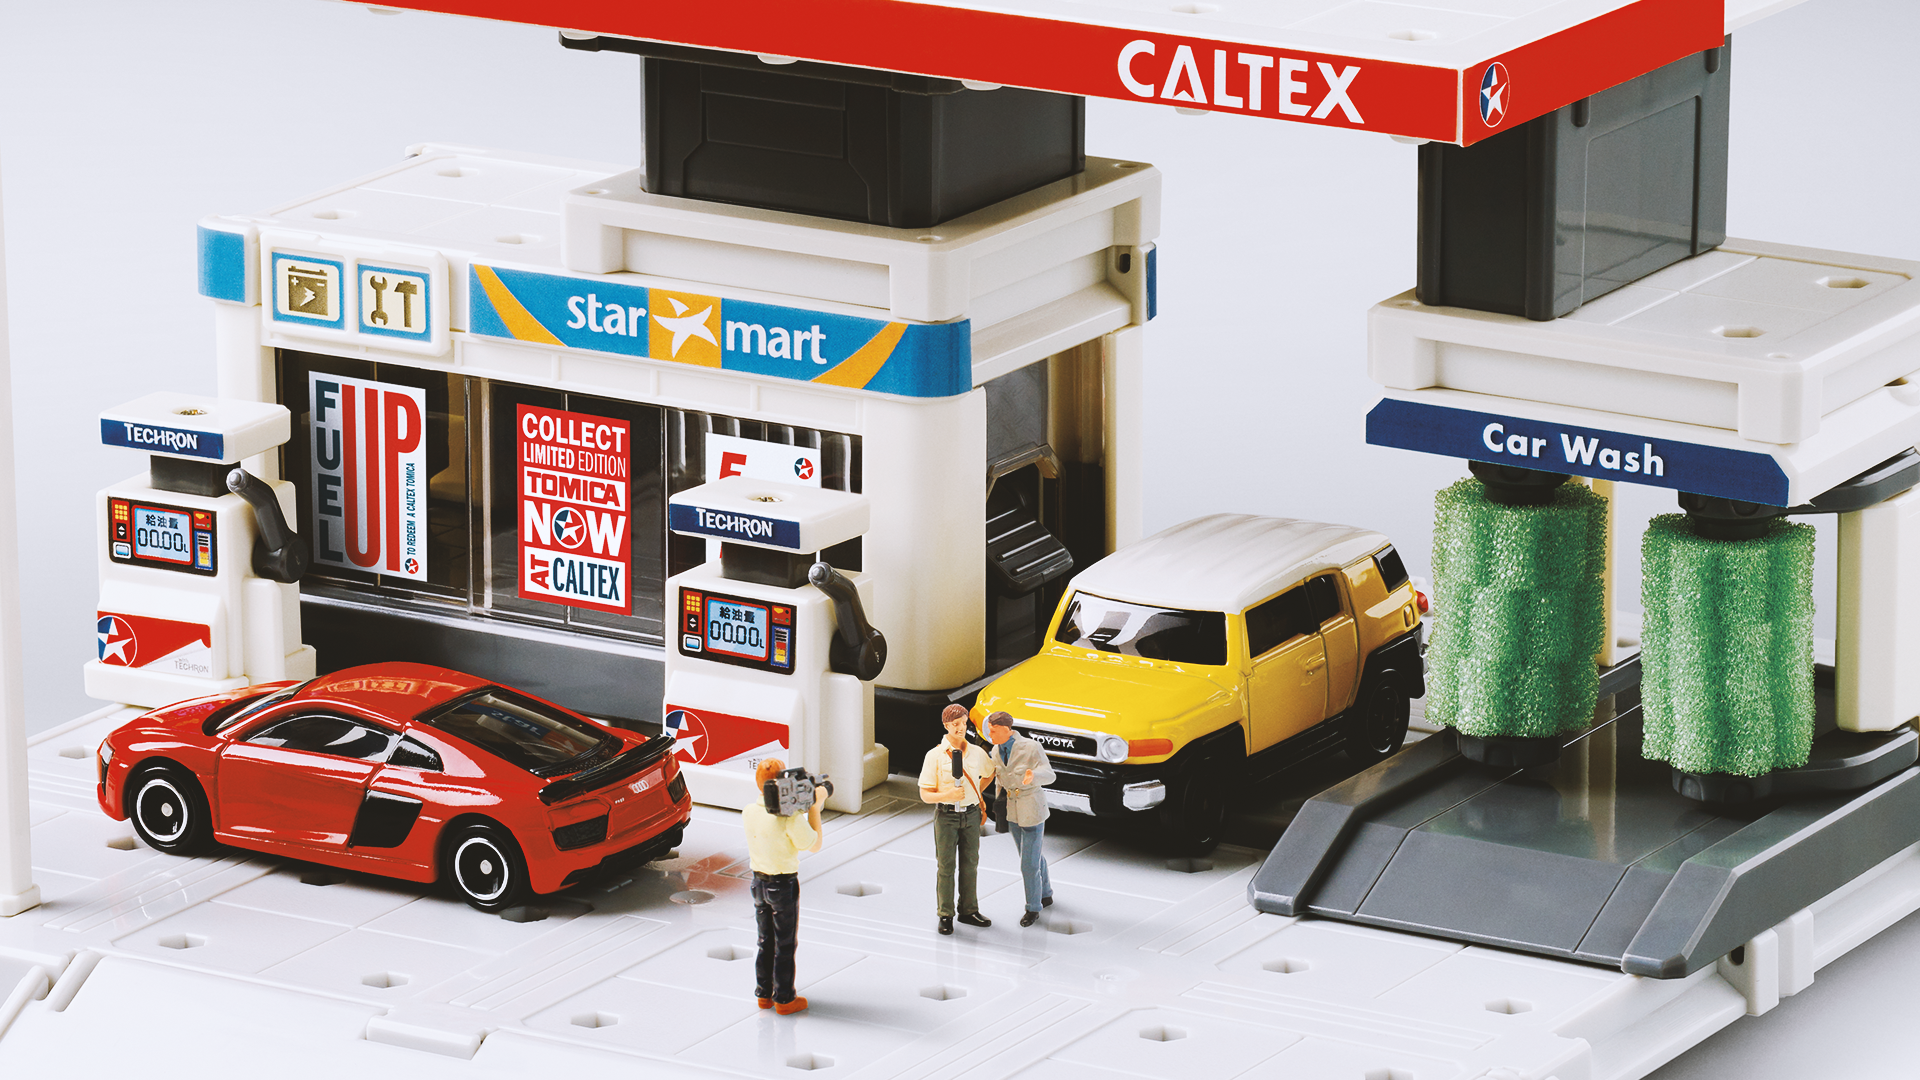 Caltex ↳ A scaled-down POS campaign to promote a toy version of Caltex Gas Station.